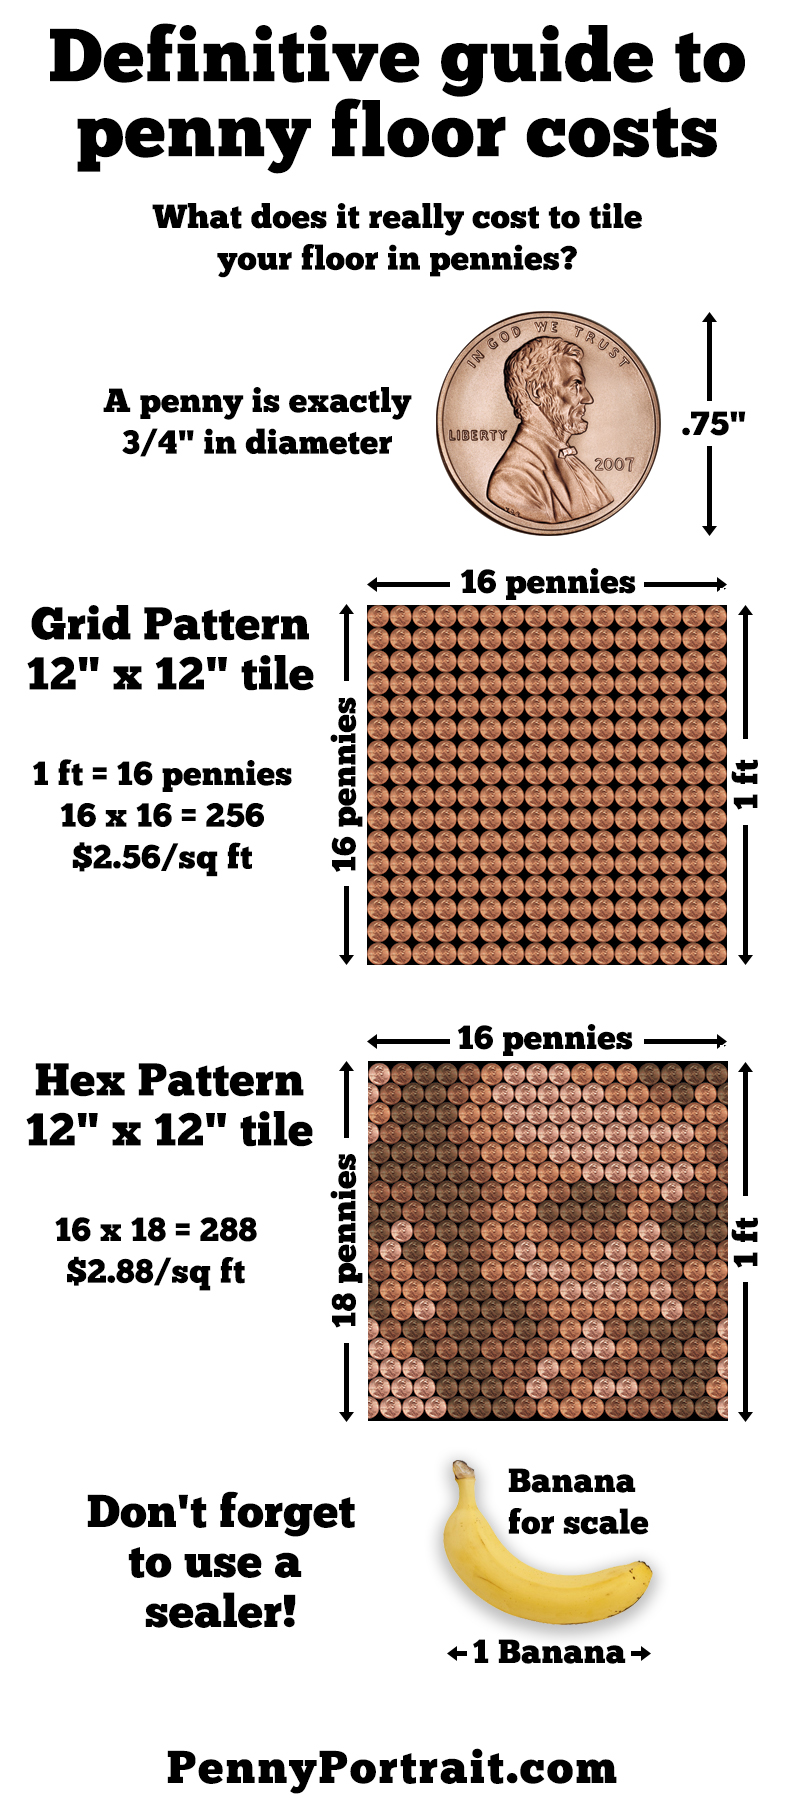 The Definitive Guide To Penny Floor Costs Penny Portrait